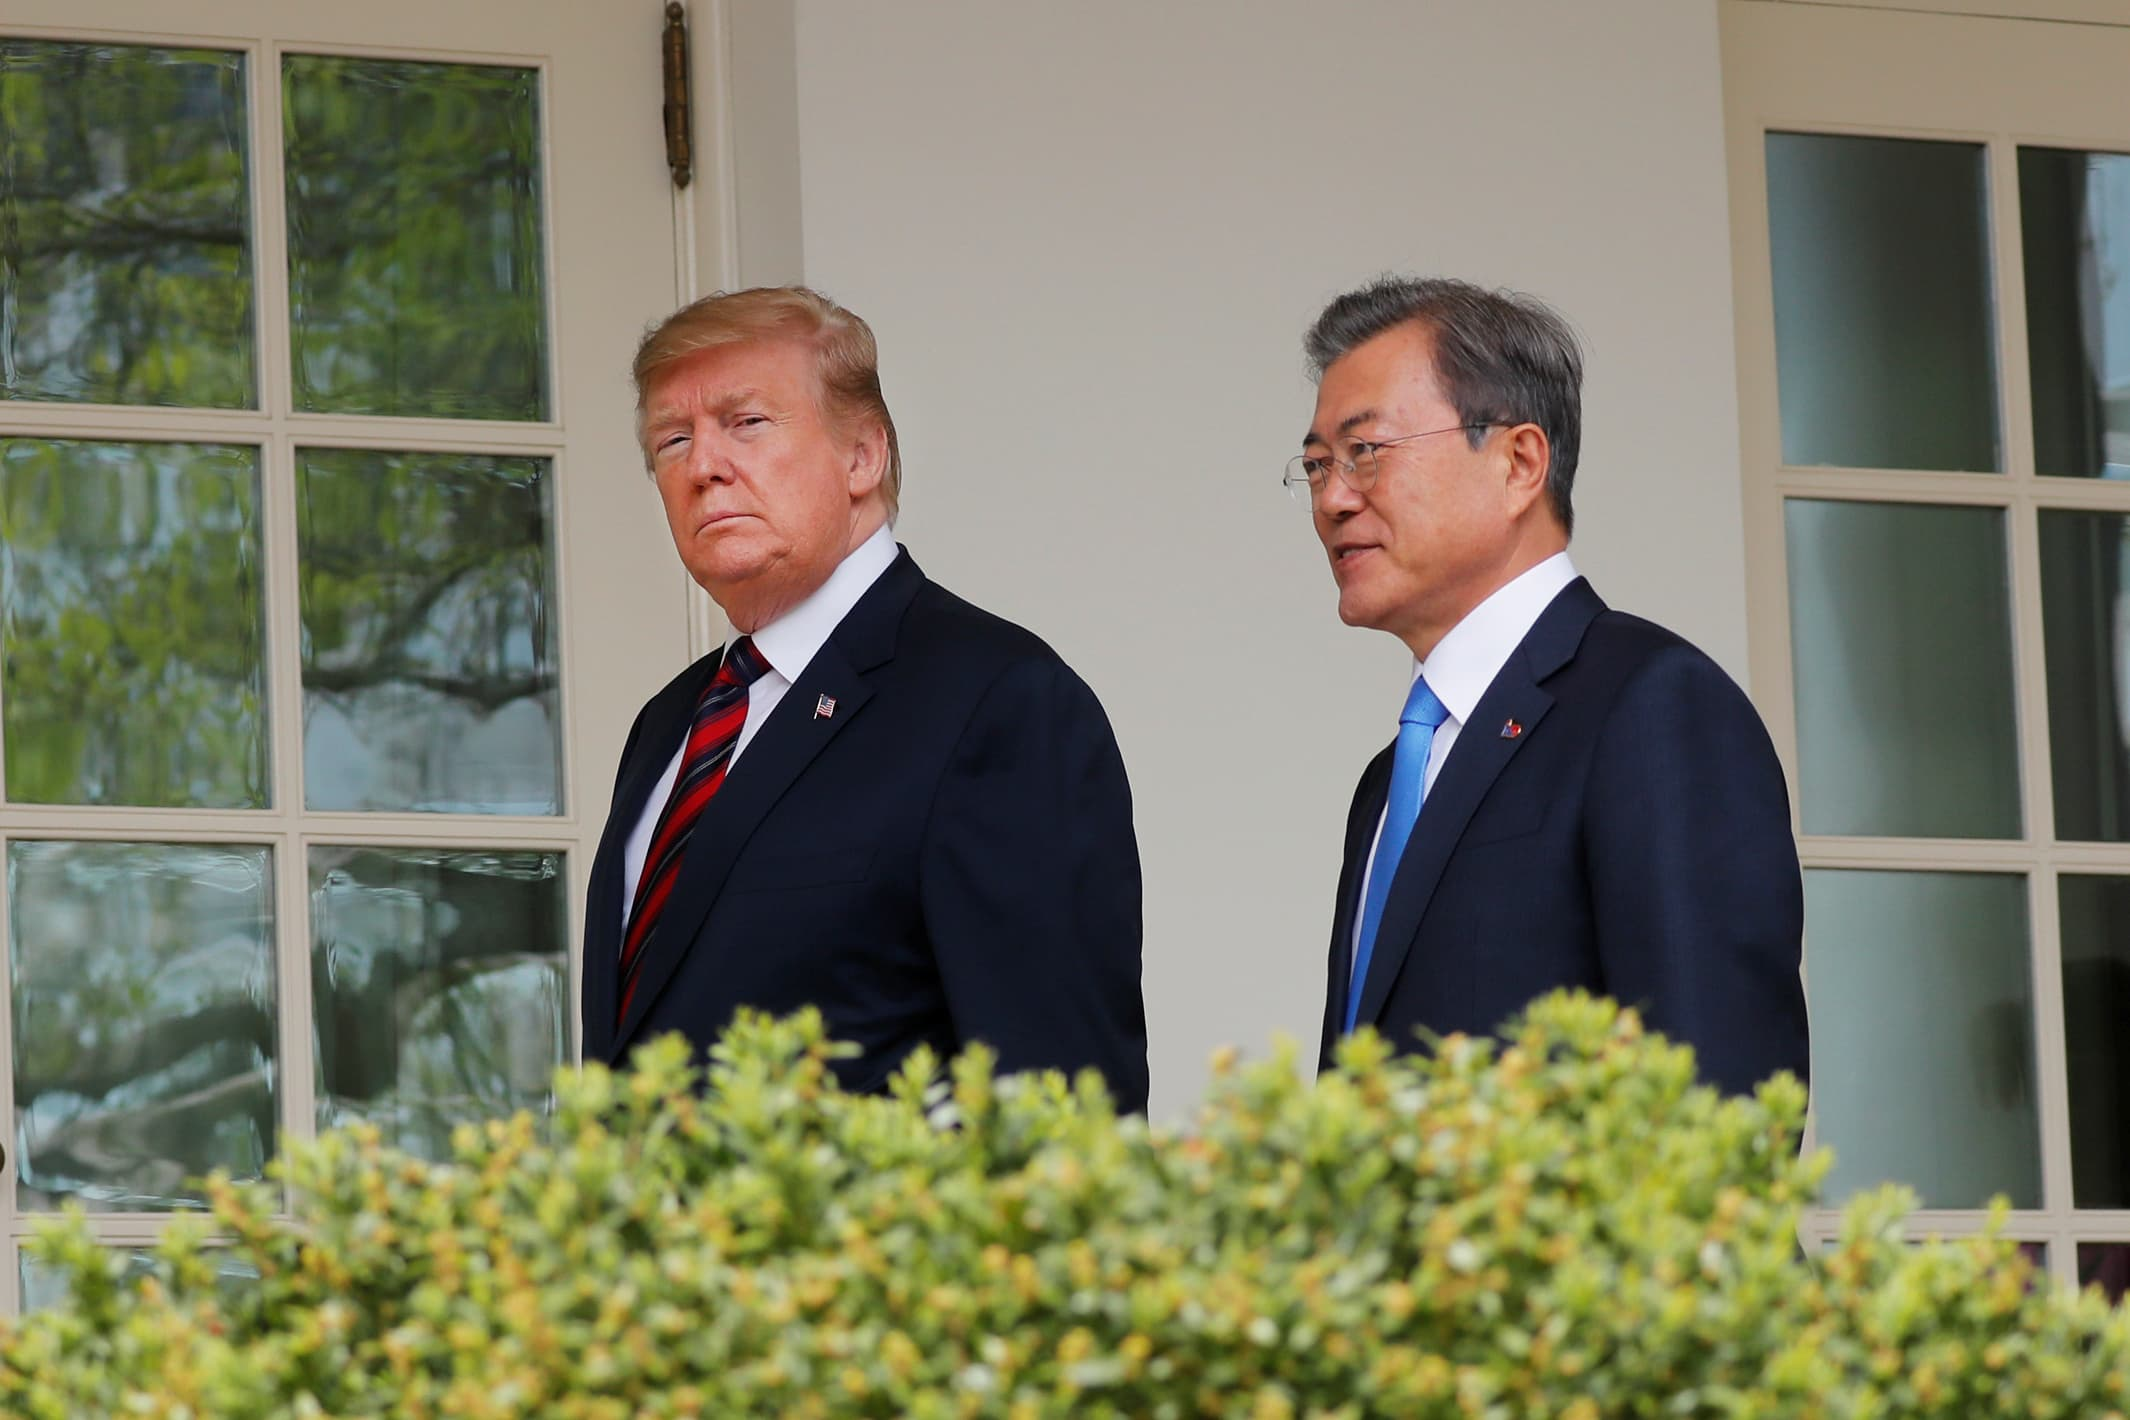 Trump to meet with South Korean leader Moon Jae-in amid stalled North Korea nuclear talks